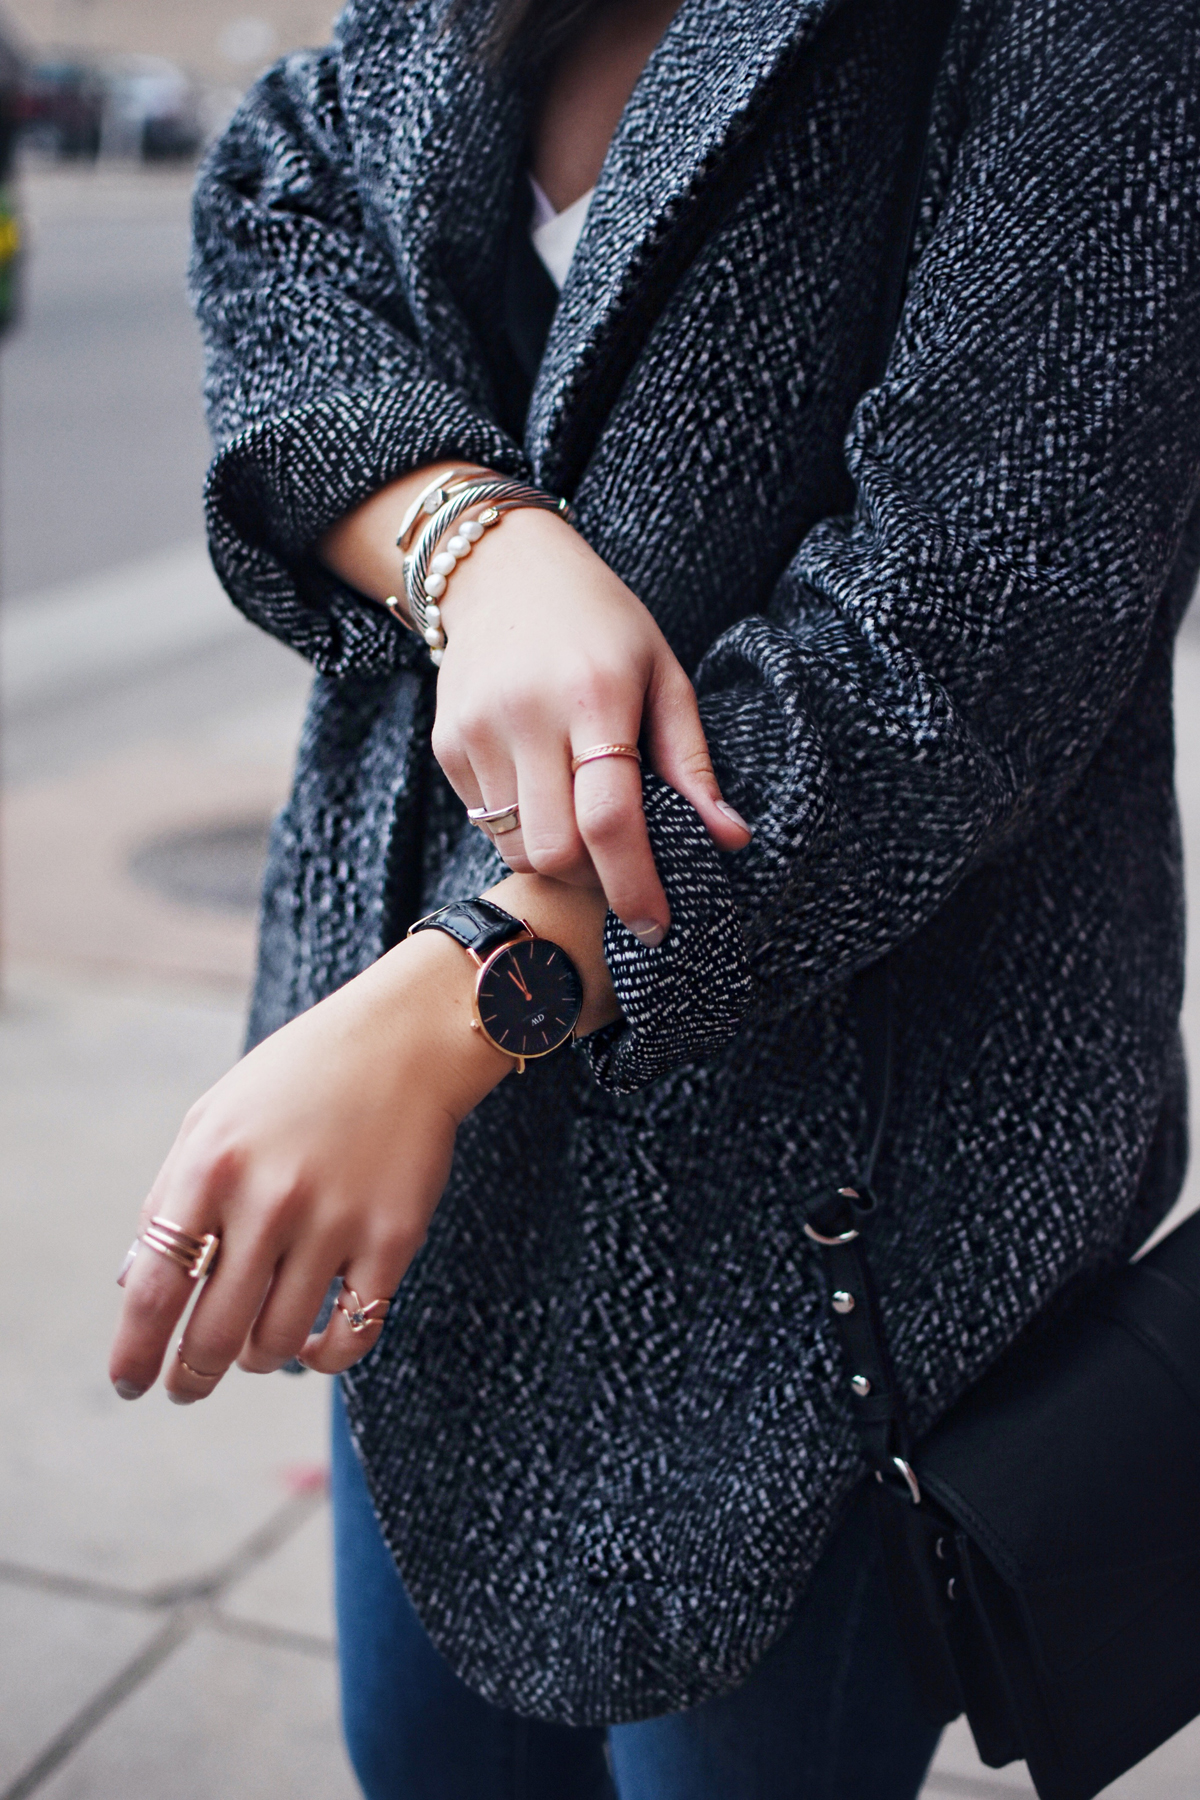 Shein Jacket and Daniel Wellington watch